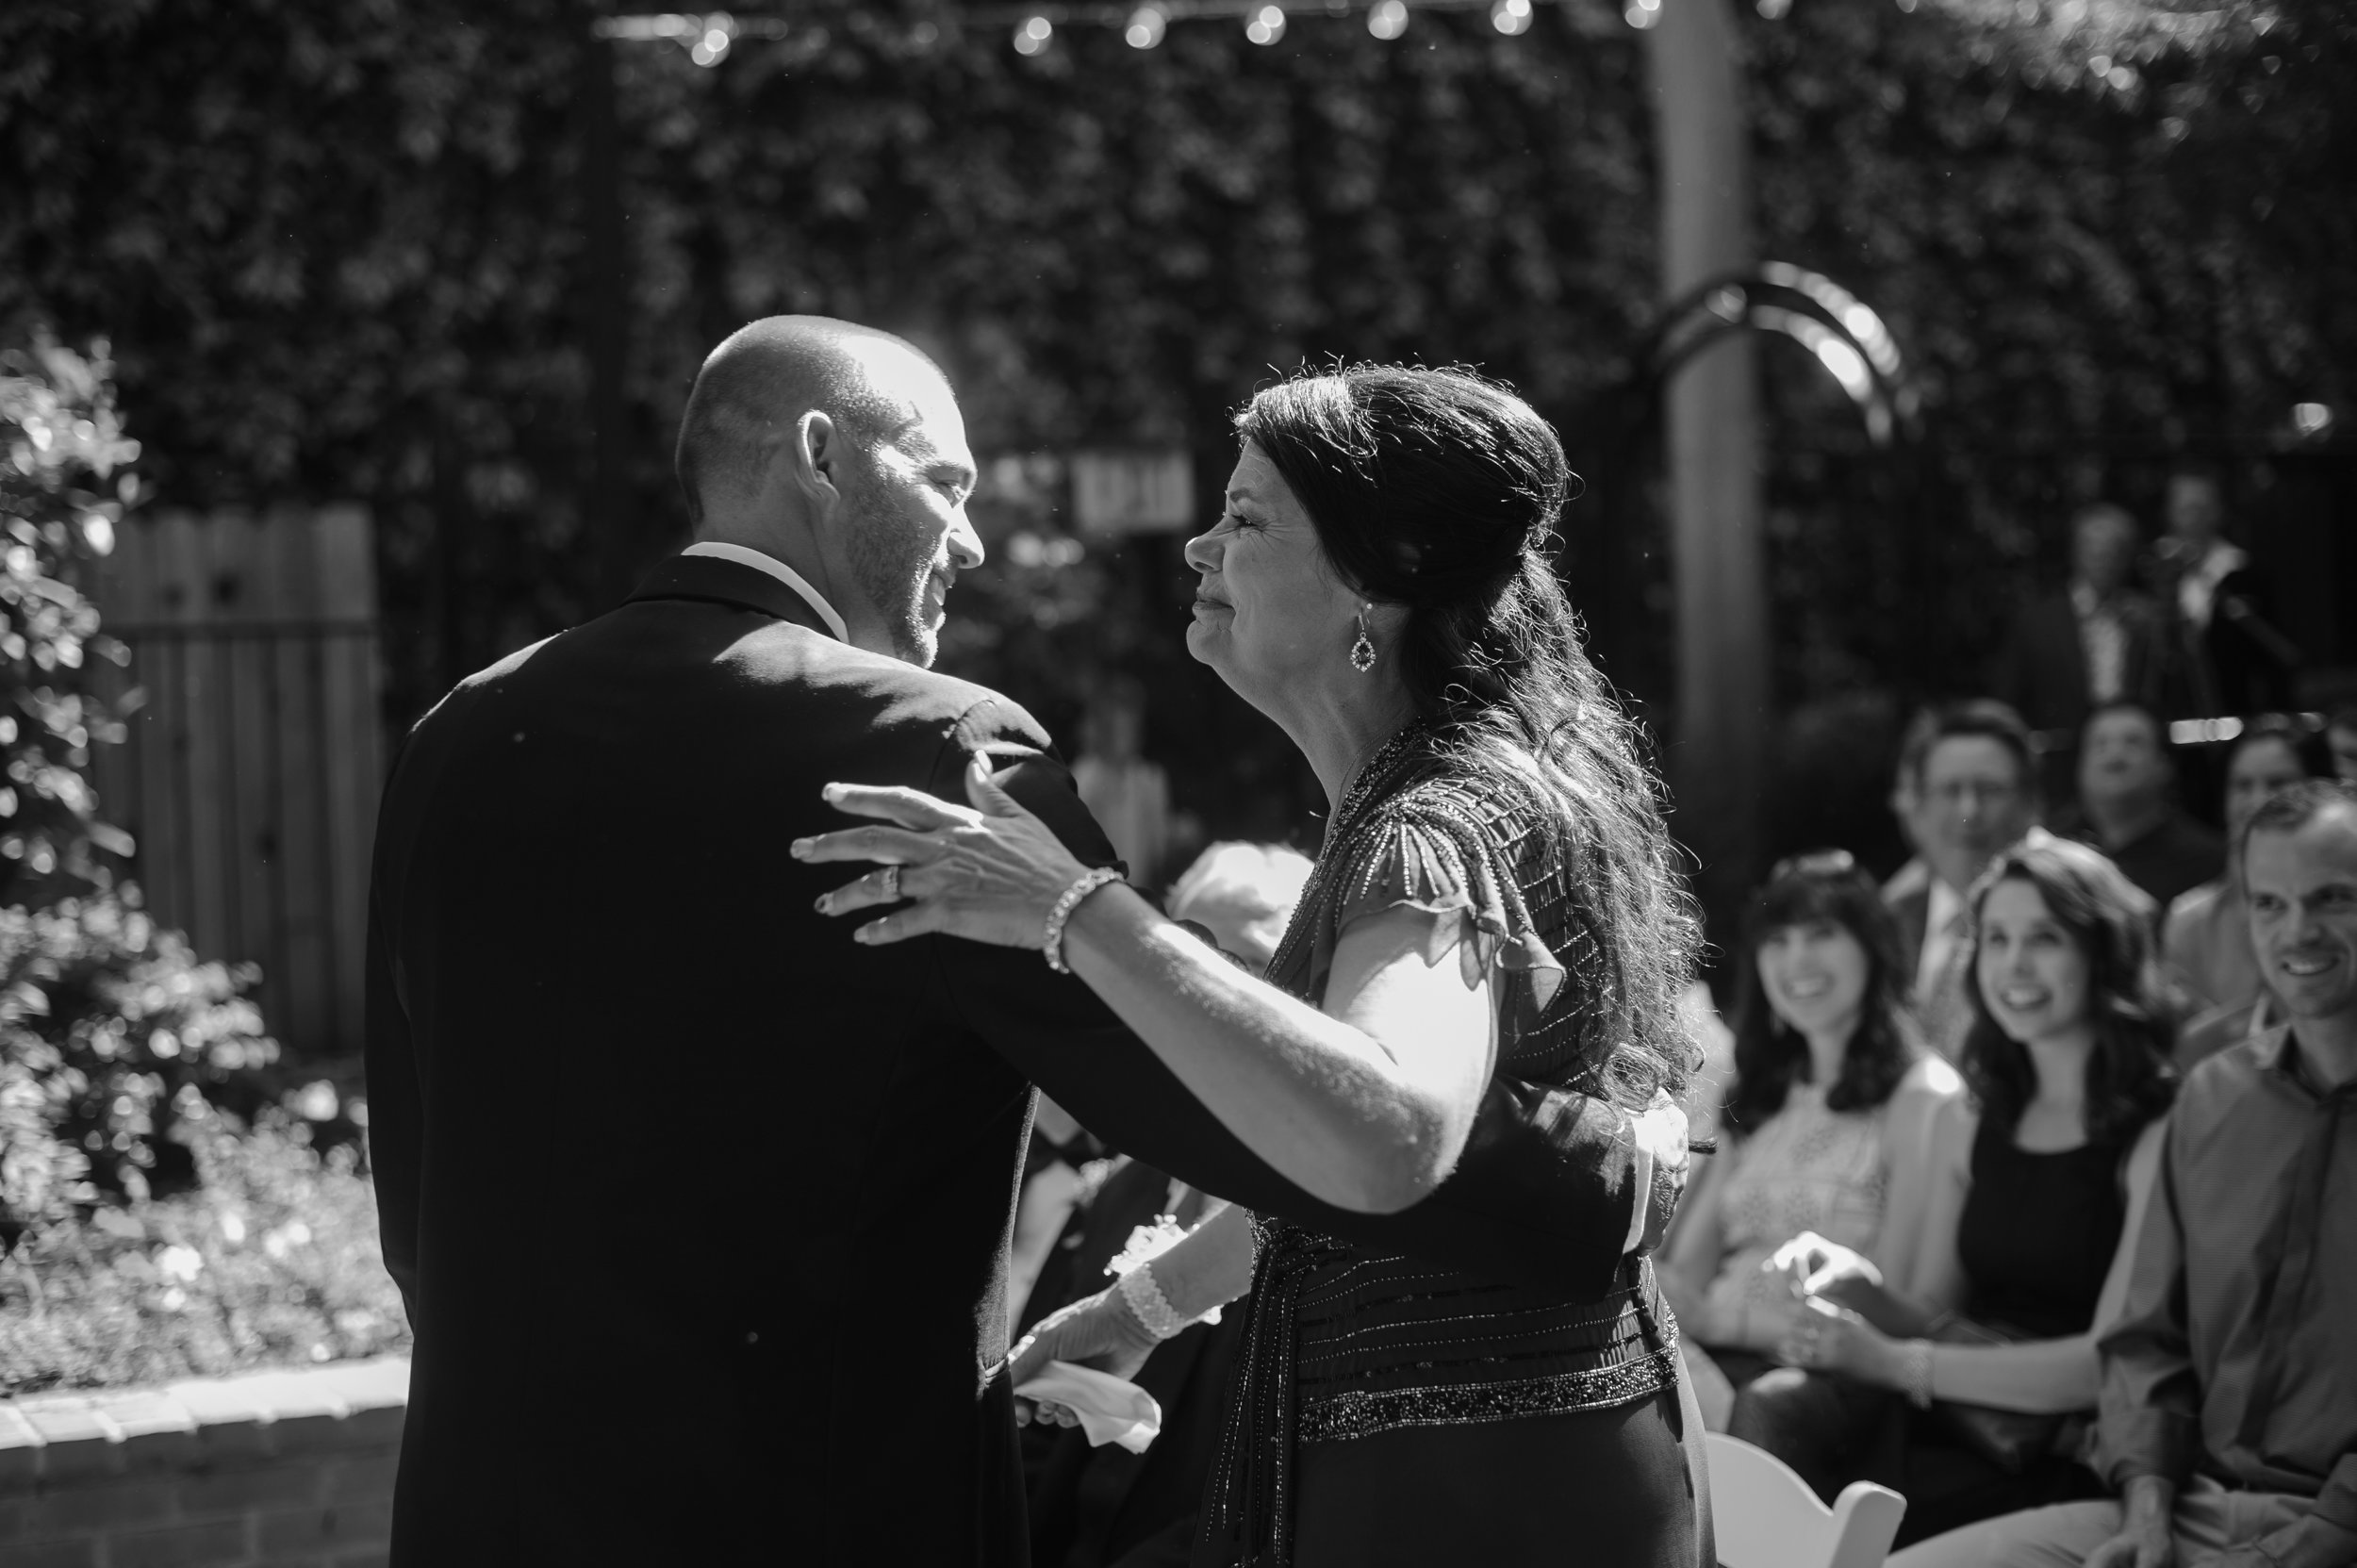 jenelle-brian-001-courtyard-d'oro-old-sacramento-wedding-photographer-katherine-nicole-photography018.JPG